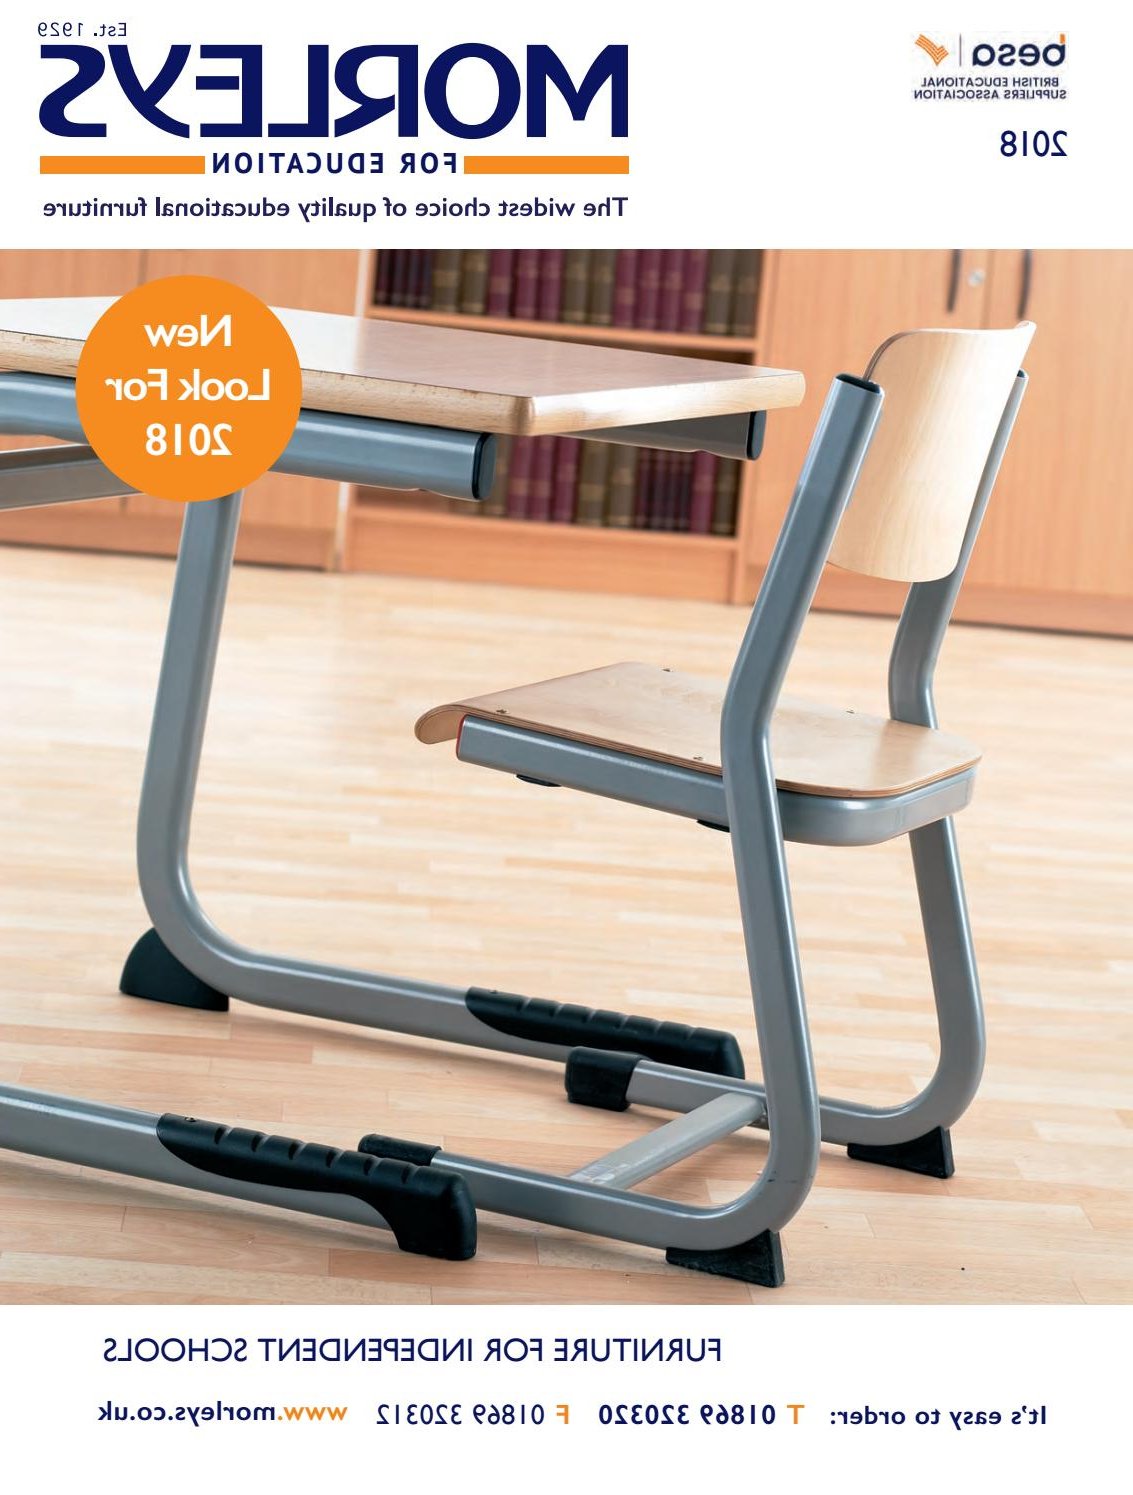 Newest Iron Grove Slatted Glider Benches Regarding Morleys Educational Furniture Catalogue 2018 (independent (View 20 of 30)